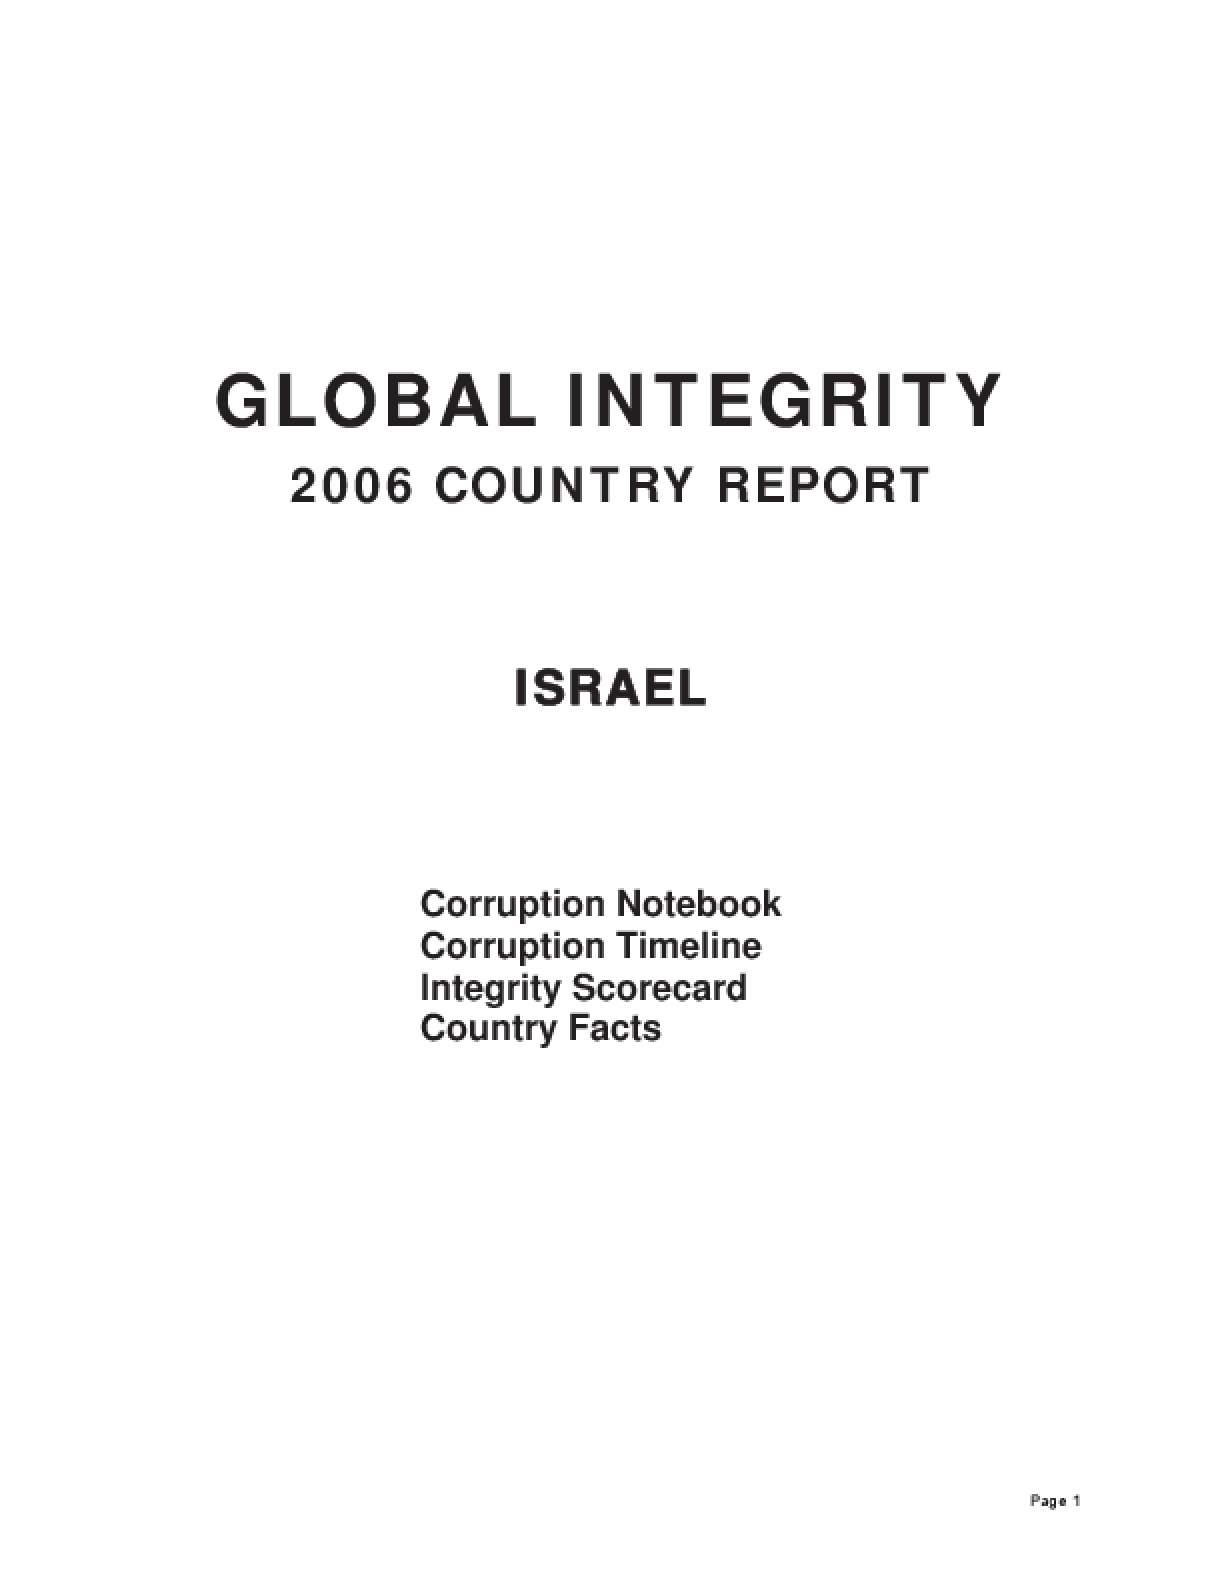 Global Integrity Report: Israel